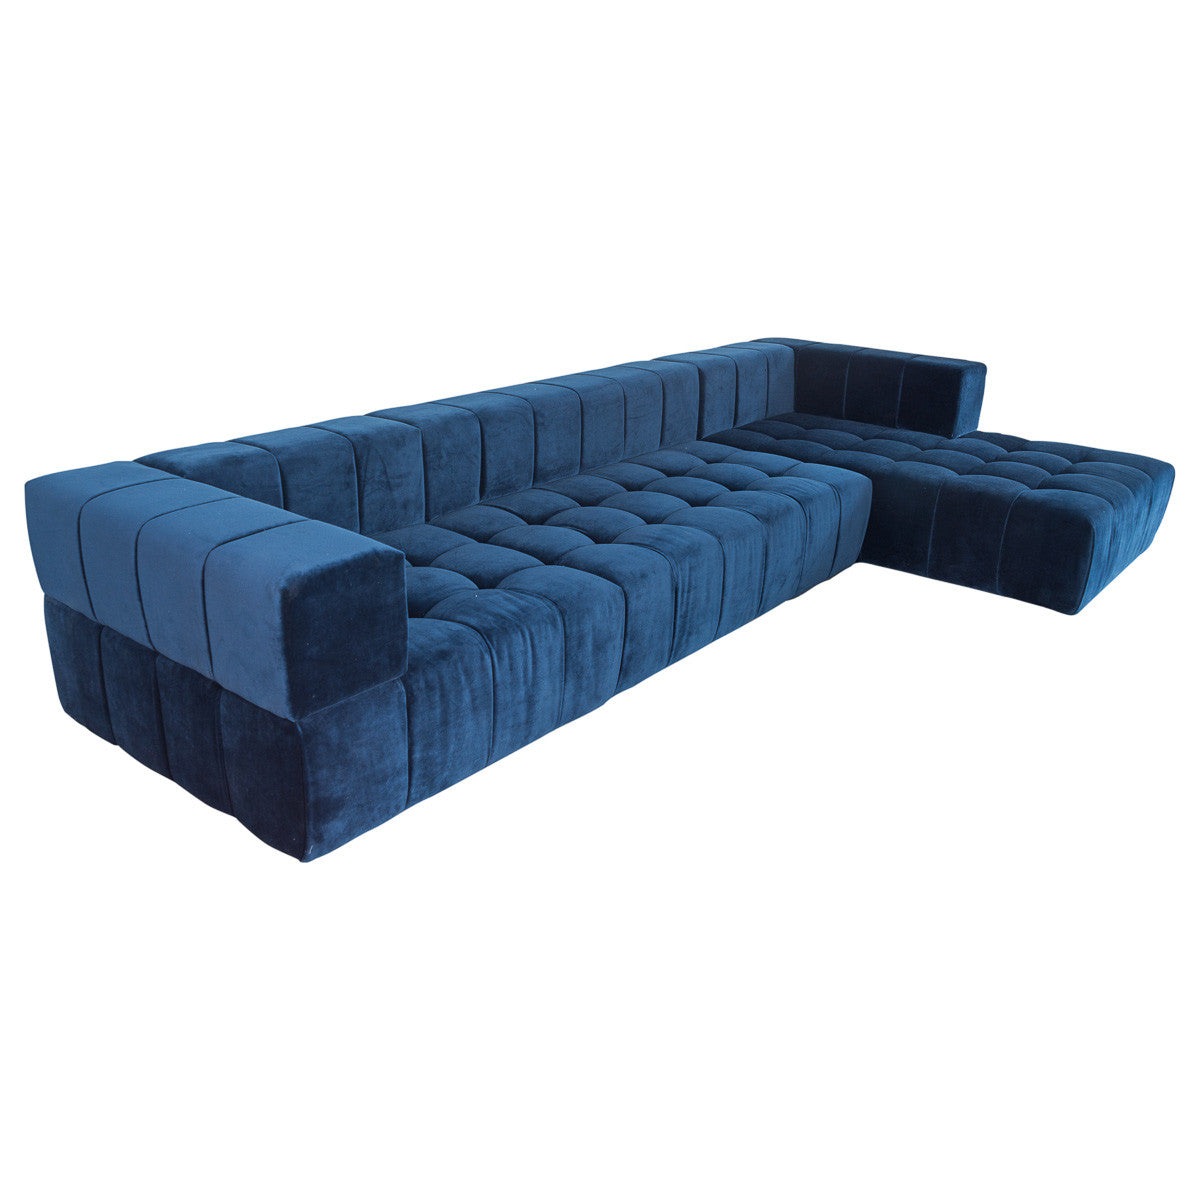 Delano Sectional With Chaise Tufted Chaise In Navy Modshop